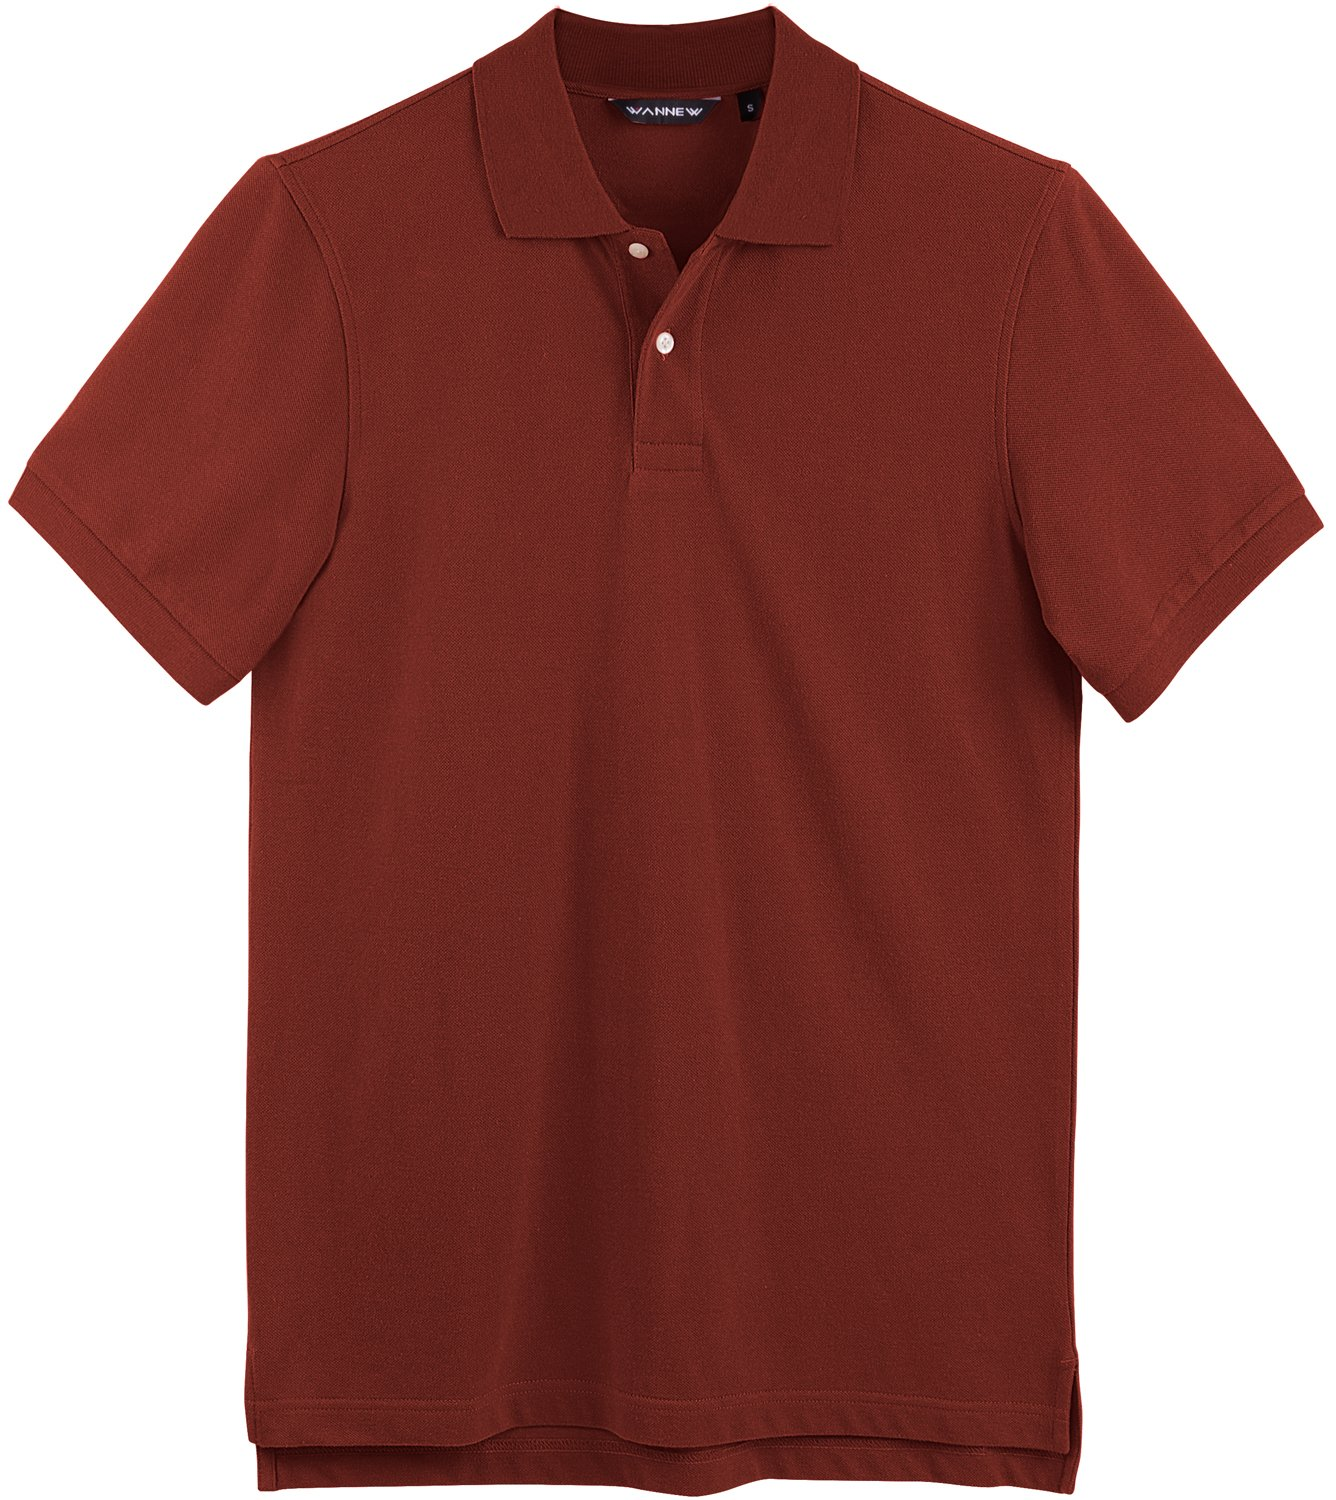 WANNEW Men's Cotton Polo Shirt Regular-Fit Quick-Dry Polo Shirts for Men (L, Red)